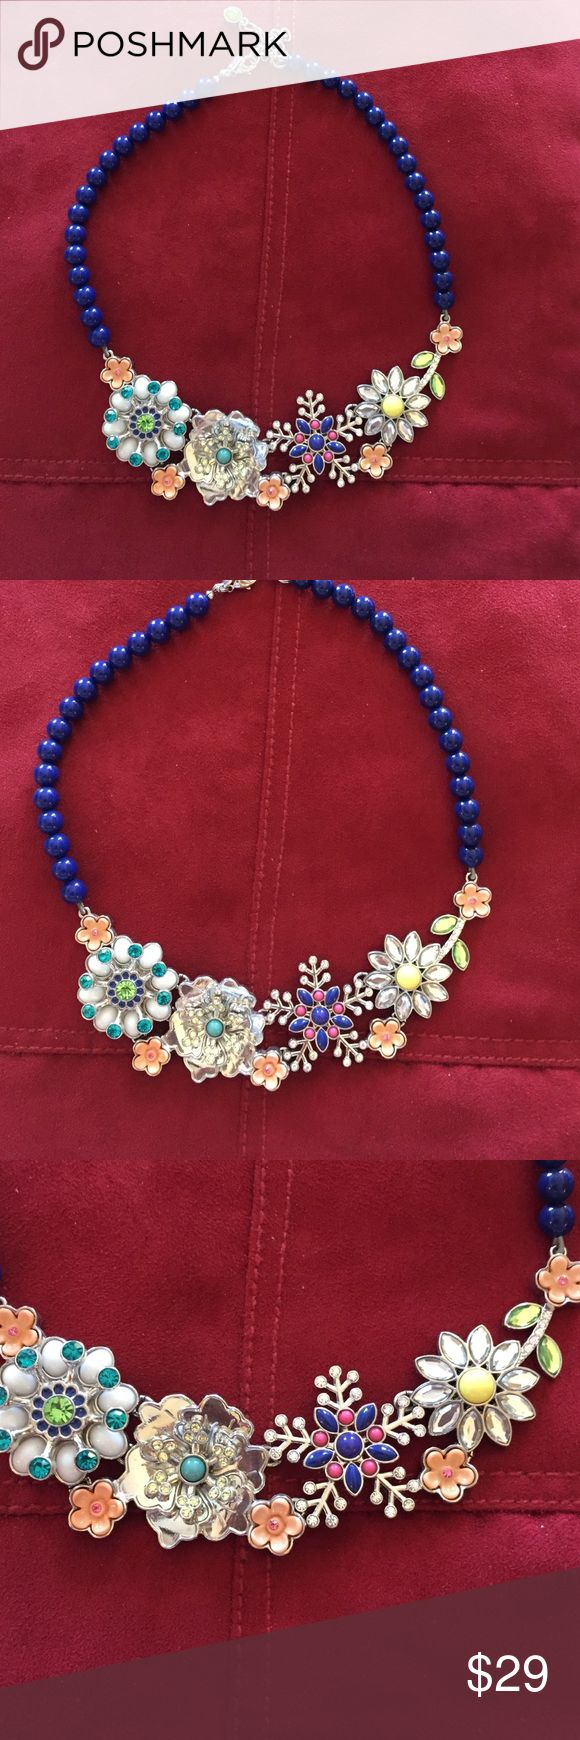 Lia Sophia Necklace Colorful Enamel on Silver Floral Motif combined w Blue Beaded Chain. Adjustable Lia Sophia Jewelry Necklaces